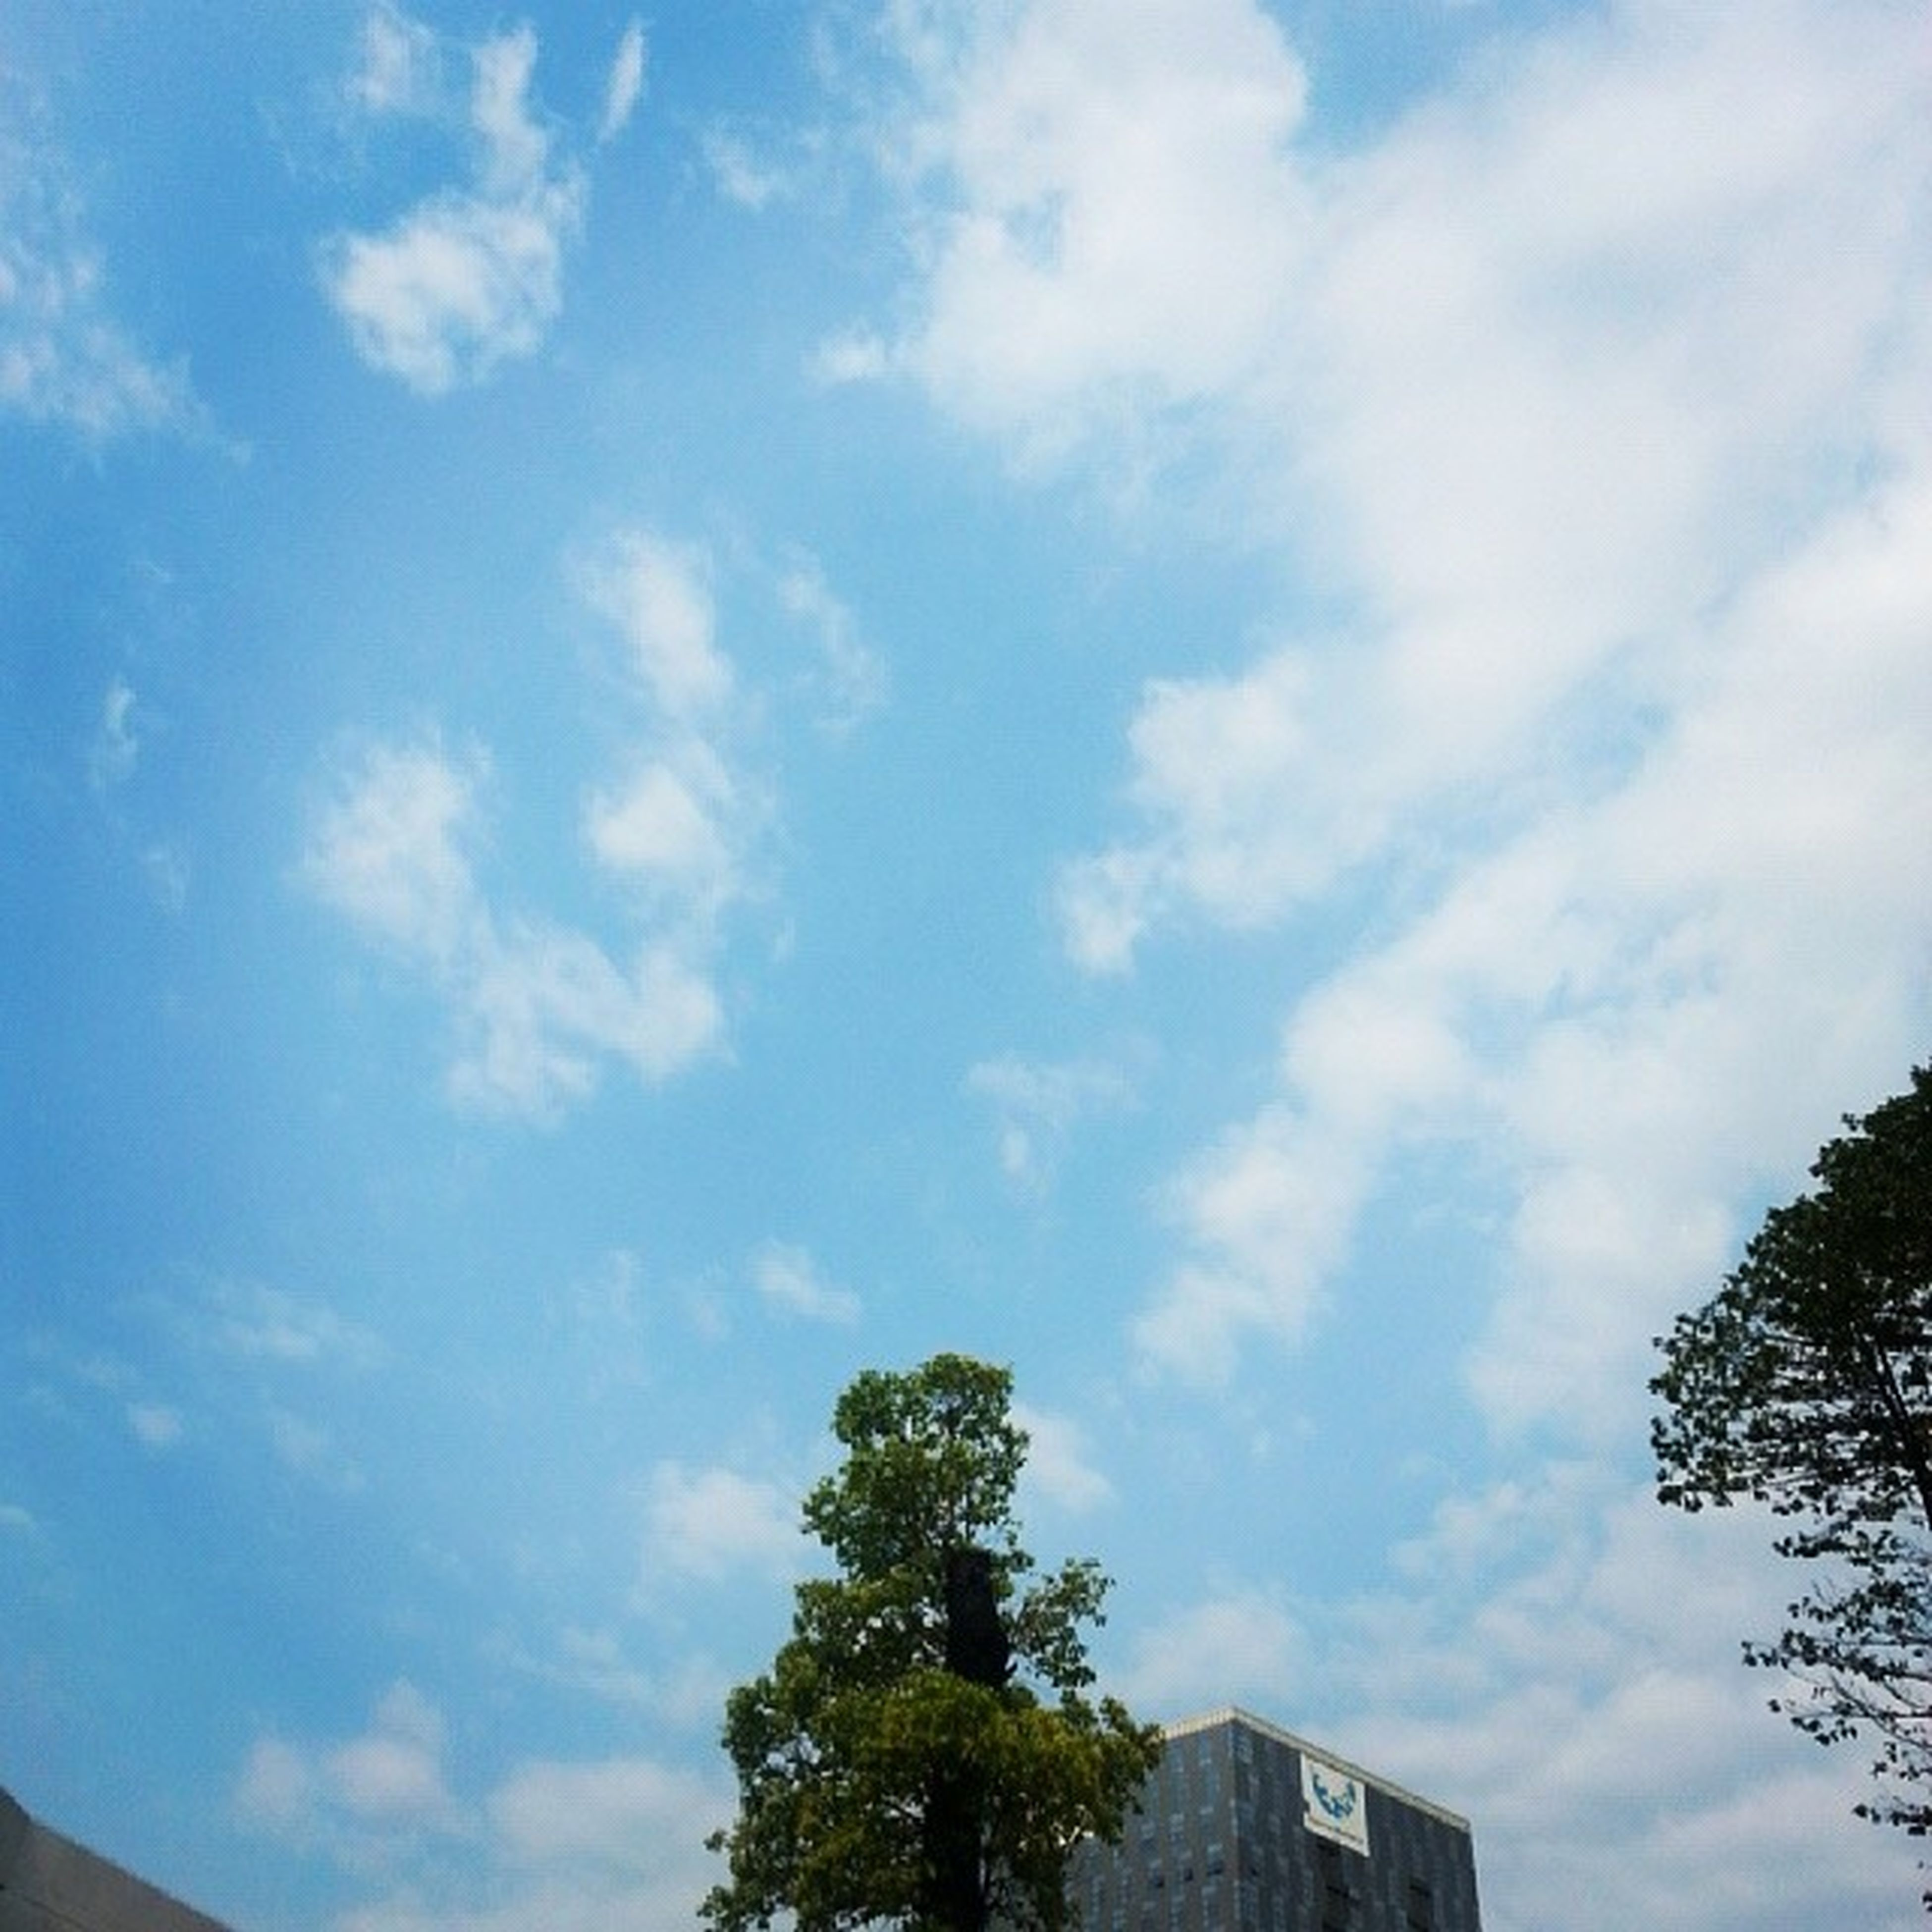 low angle view, tree, sky, cloud - sky, built structure, blue, architecture, building exterior, cloud, growth, high section, nature, cloudy, beauty in nature, day, outdoors, no people, tranquility, treetop, branch